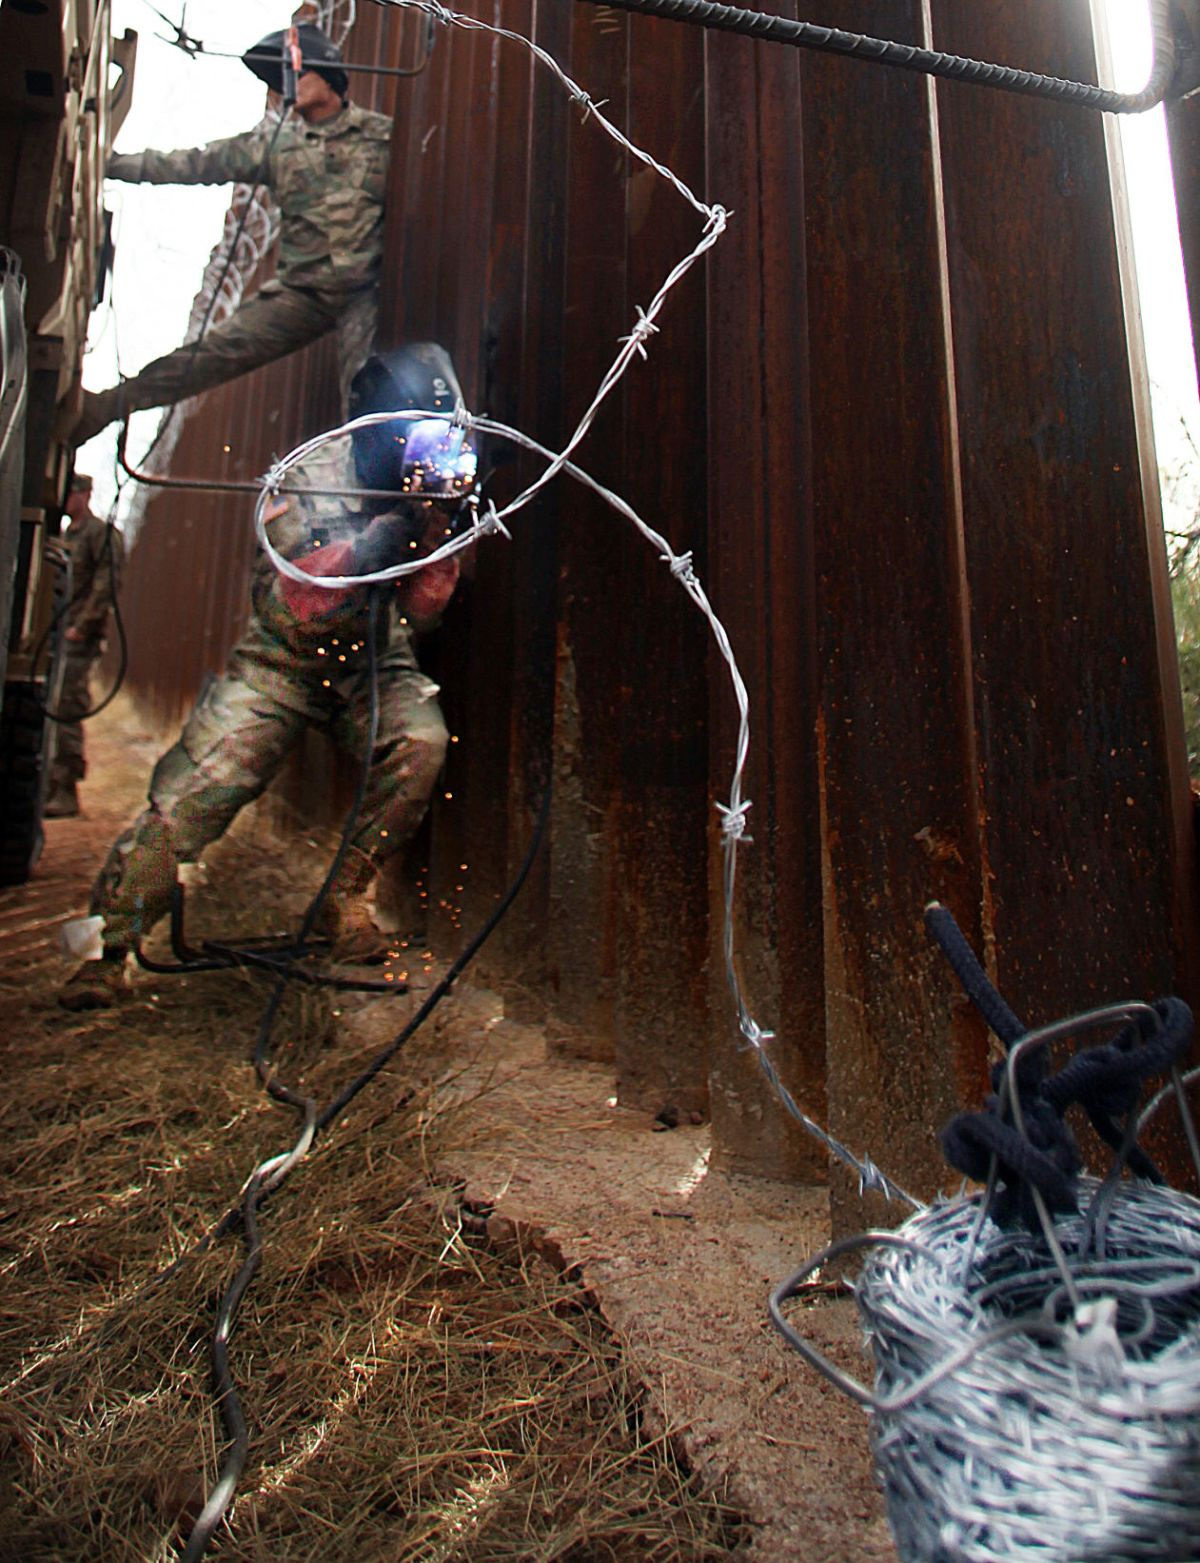 medium resolution of troops add more wire to naco border fence some bisbee and naco residents speak out against wire city of bisbee considers formal condemnation